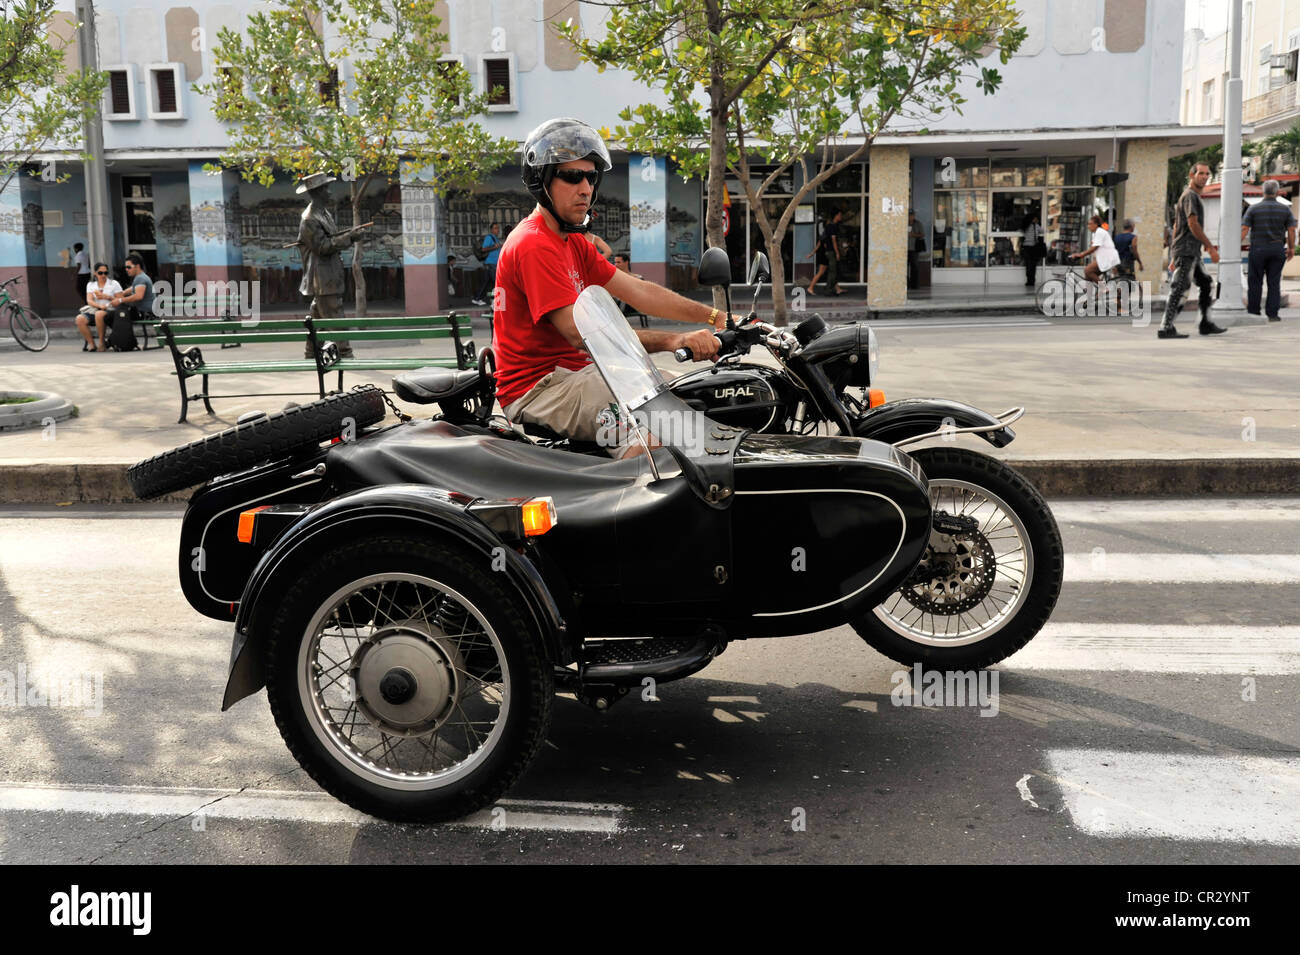 A Sidecar Stock Photos Images Alamy Tt2011 Sidecars Ural Motorcycle From Russia With Cienfuegos Cuba Greater Antilles